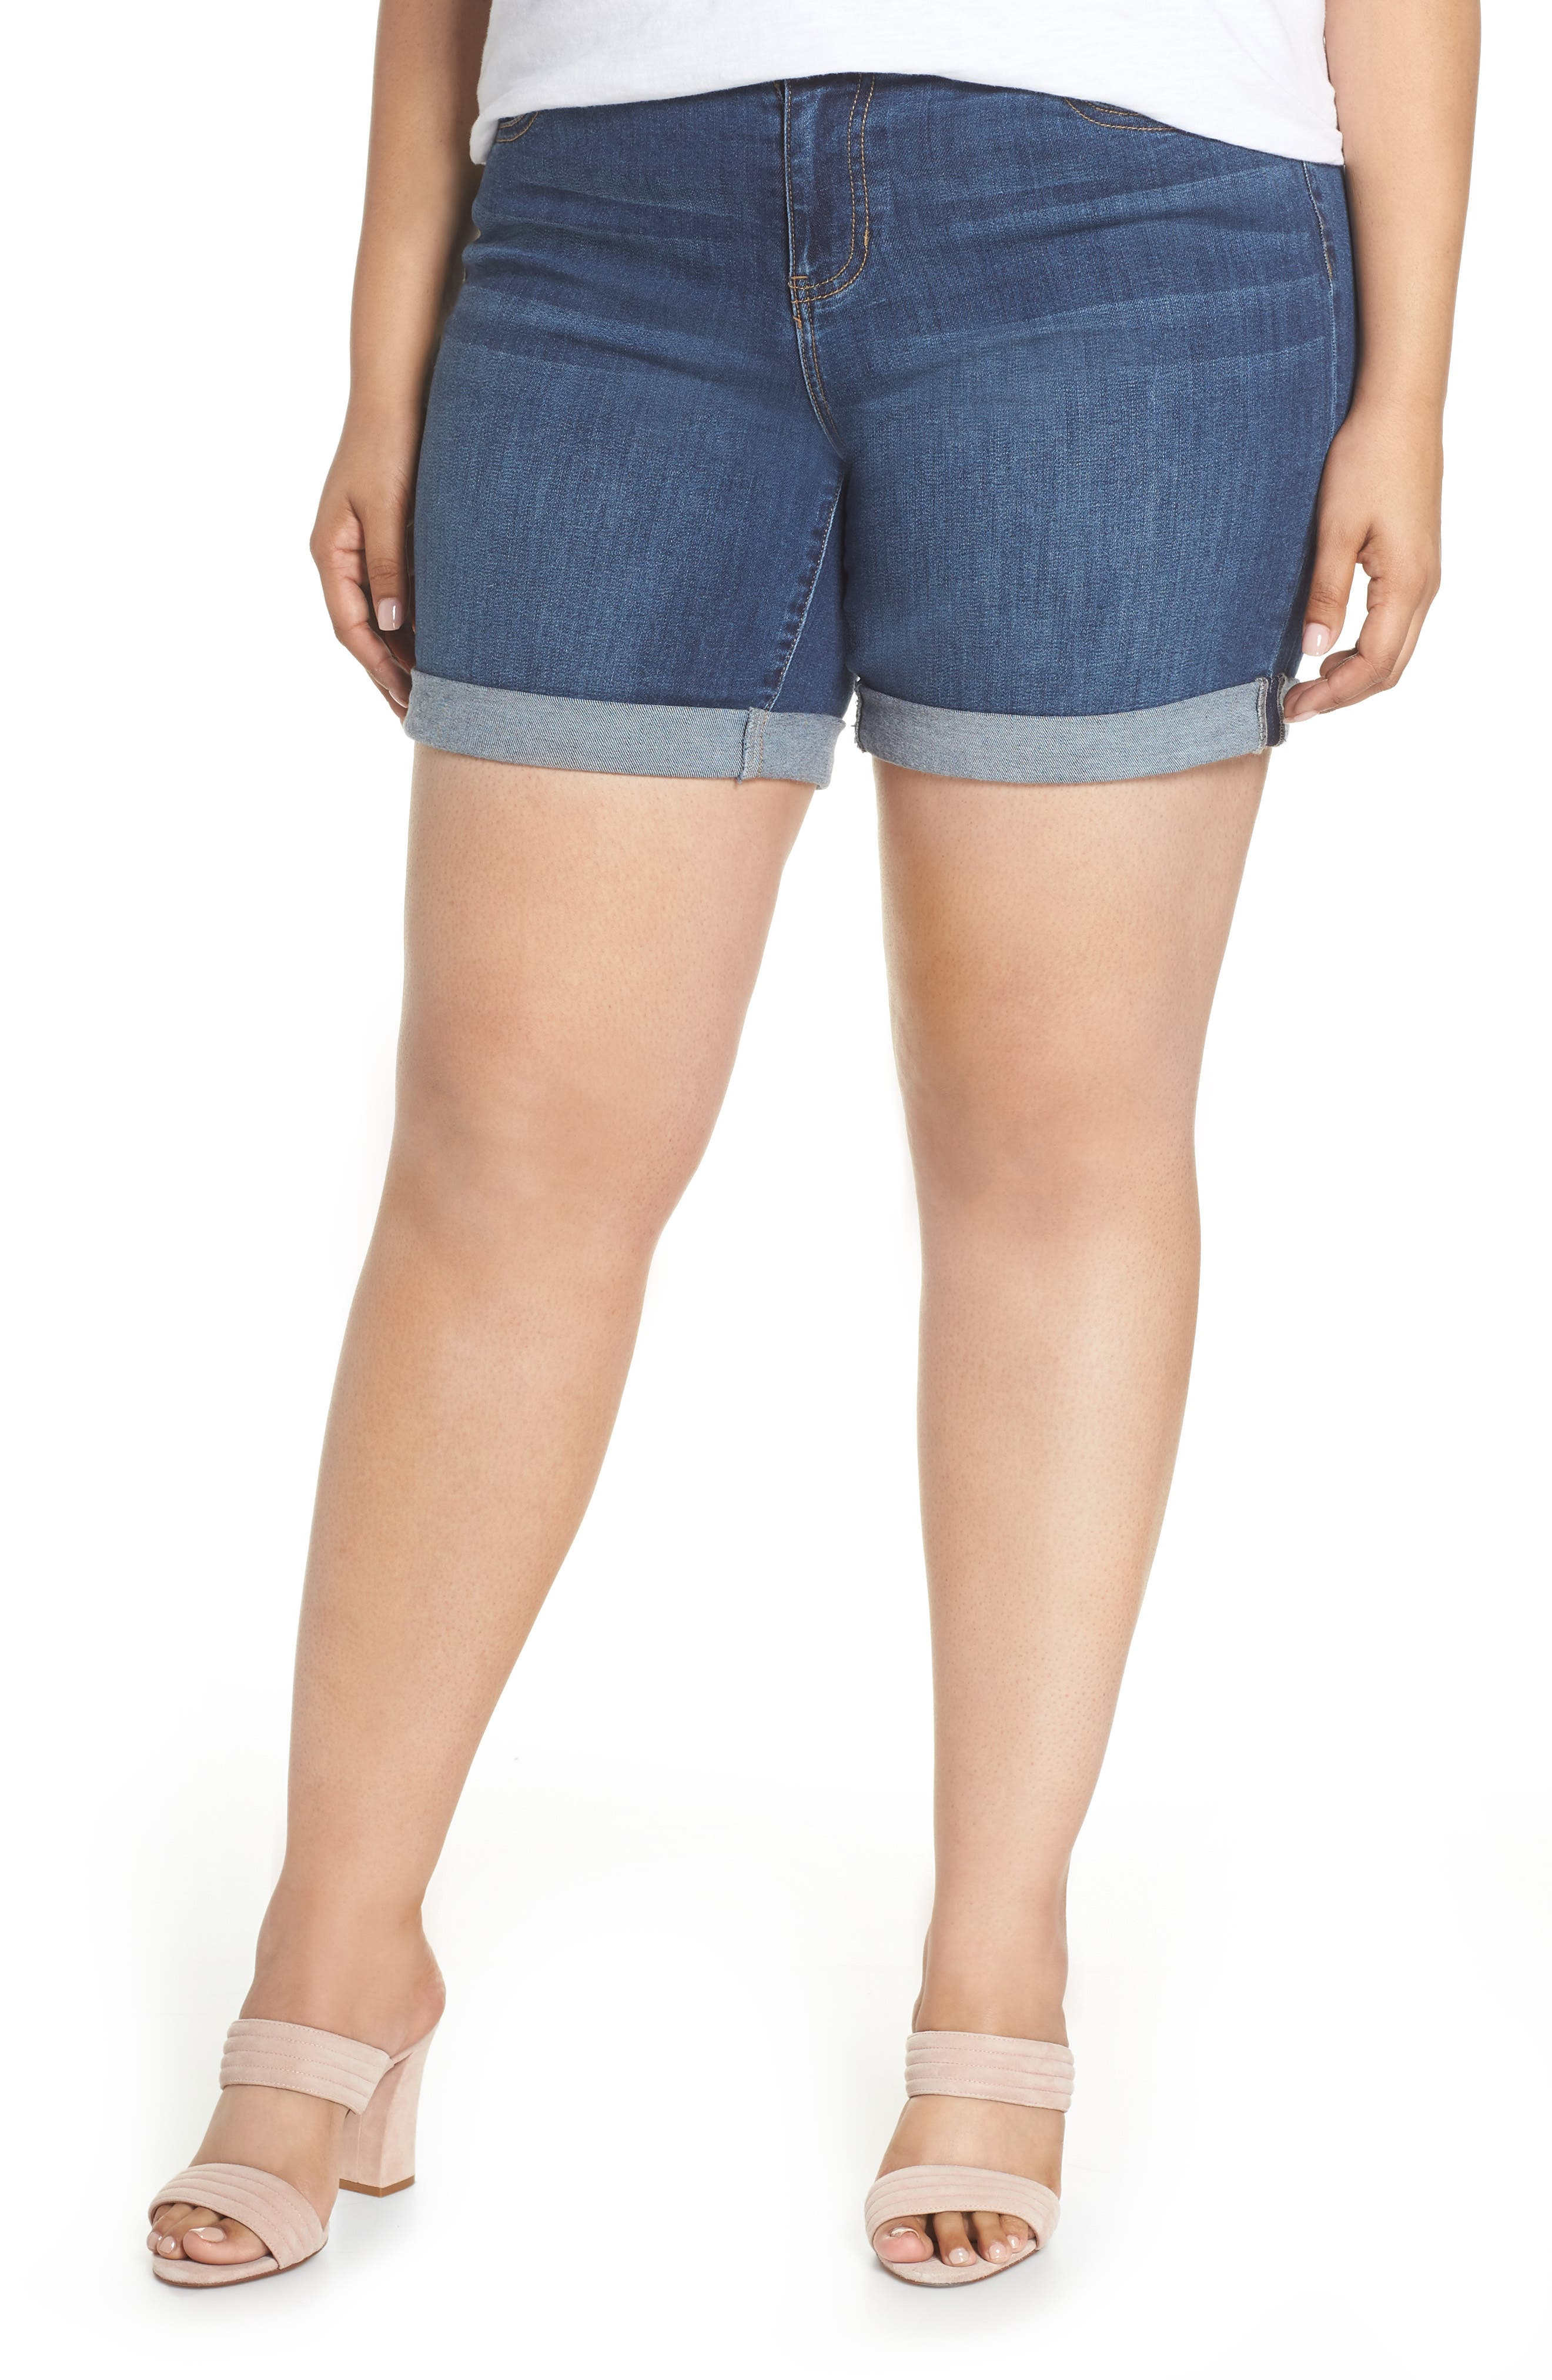 Liverpool Jeans Company Corine Denim Shorts (Plus Size)